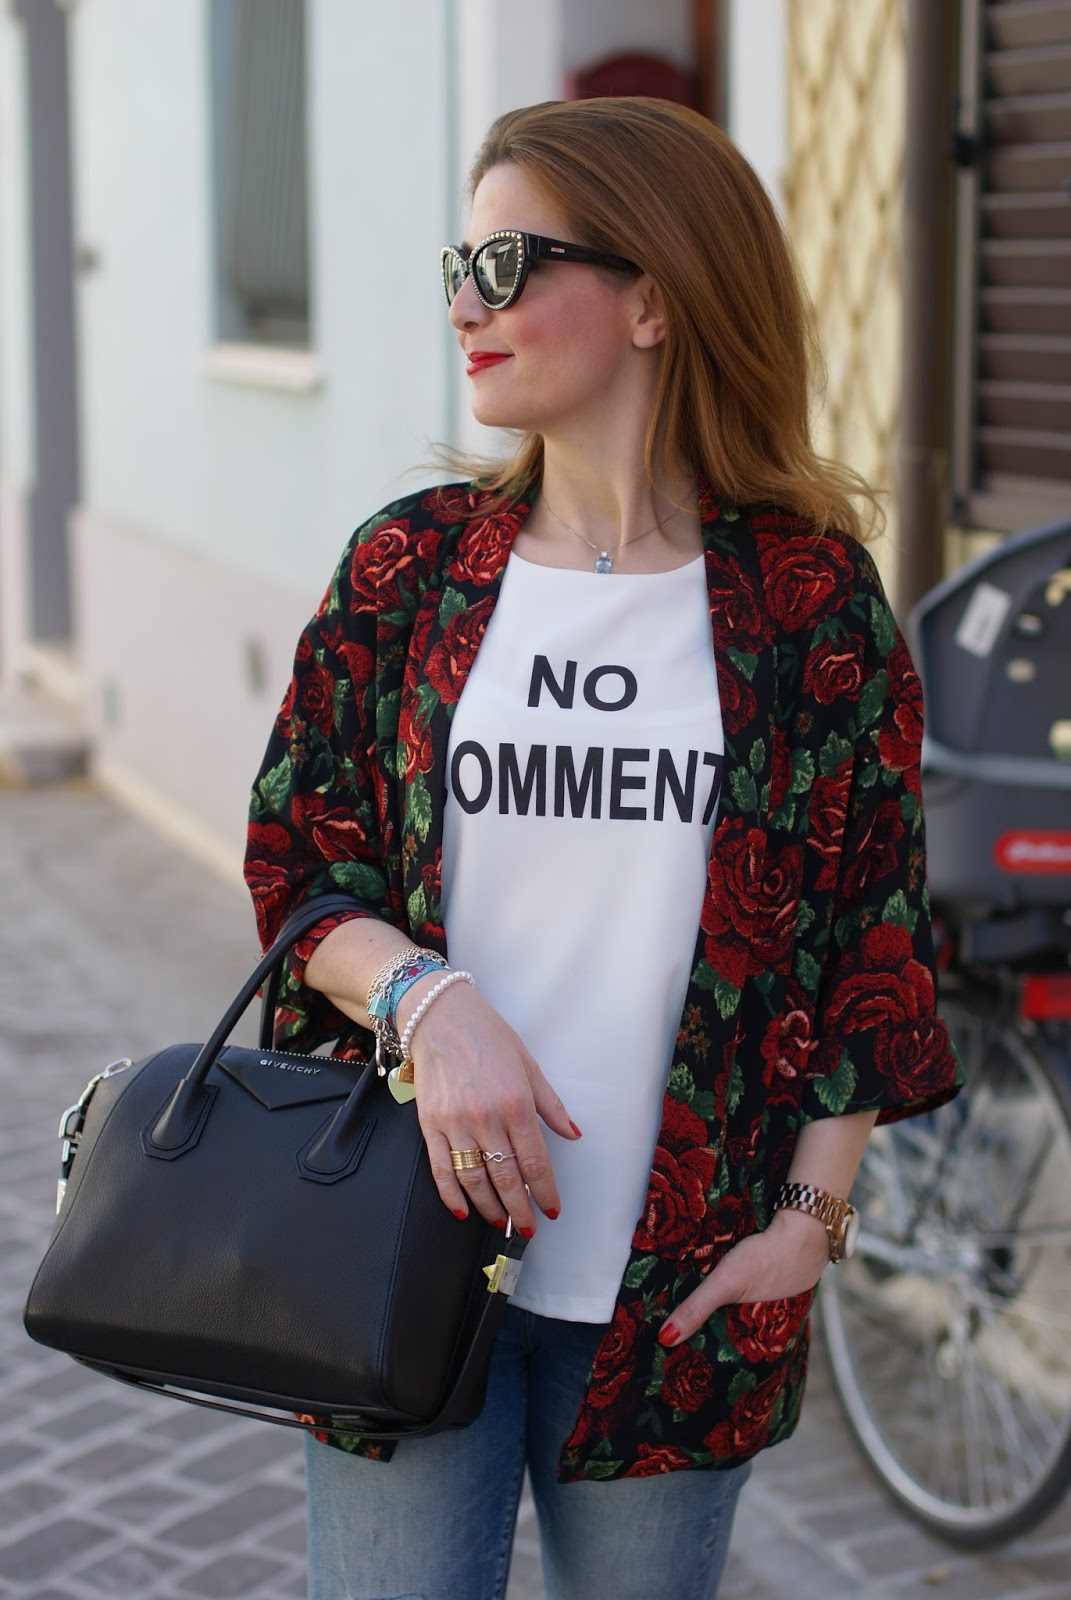 No comment t-shirt Molly Bracken, Fashion blogger style